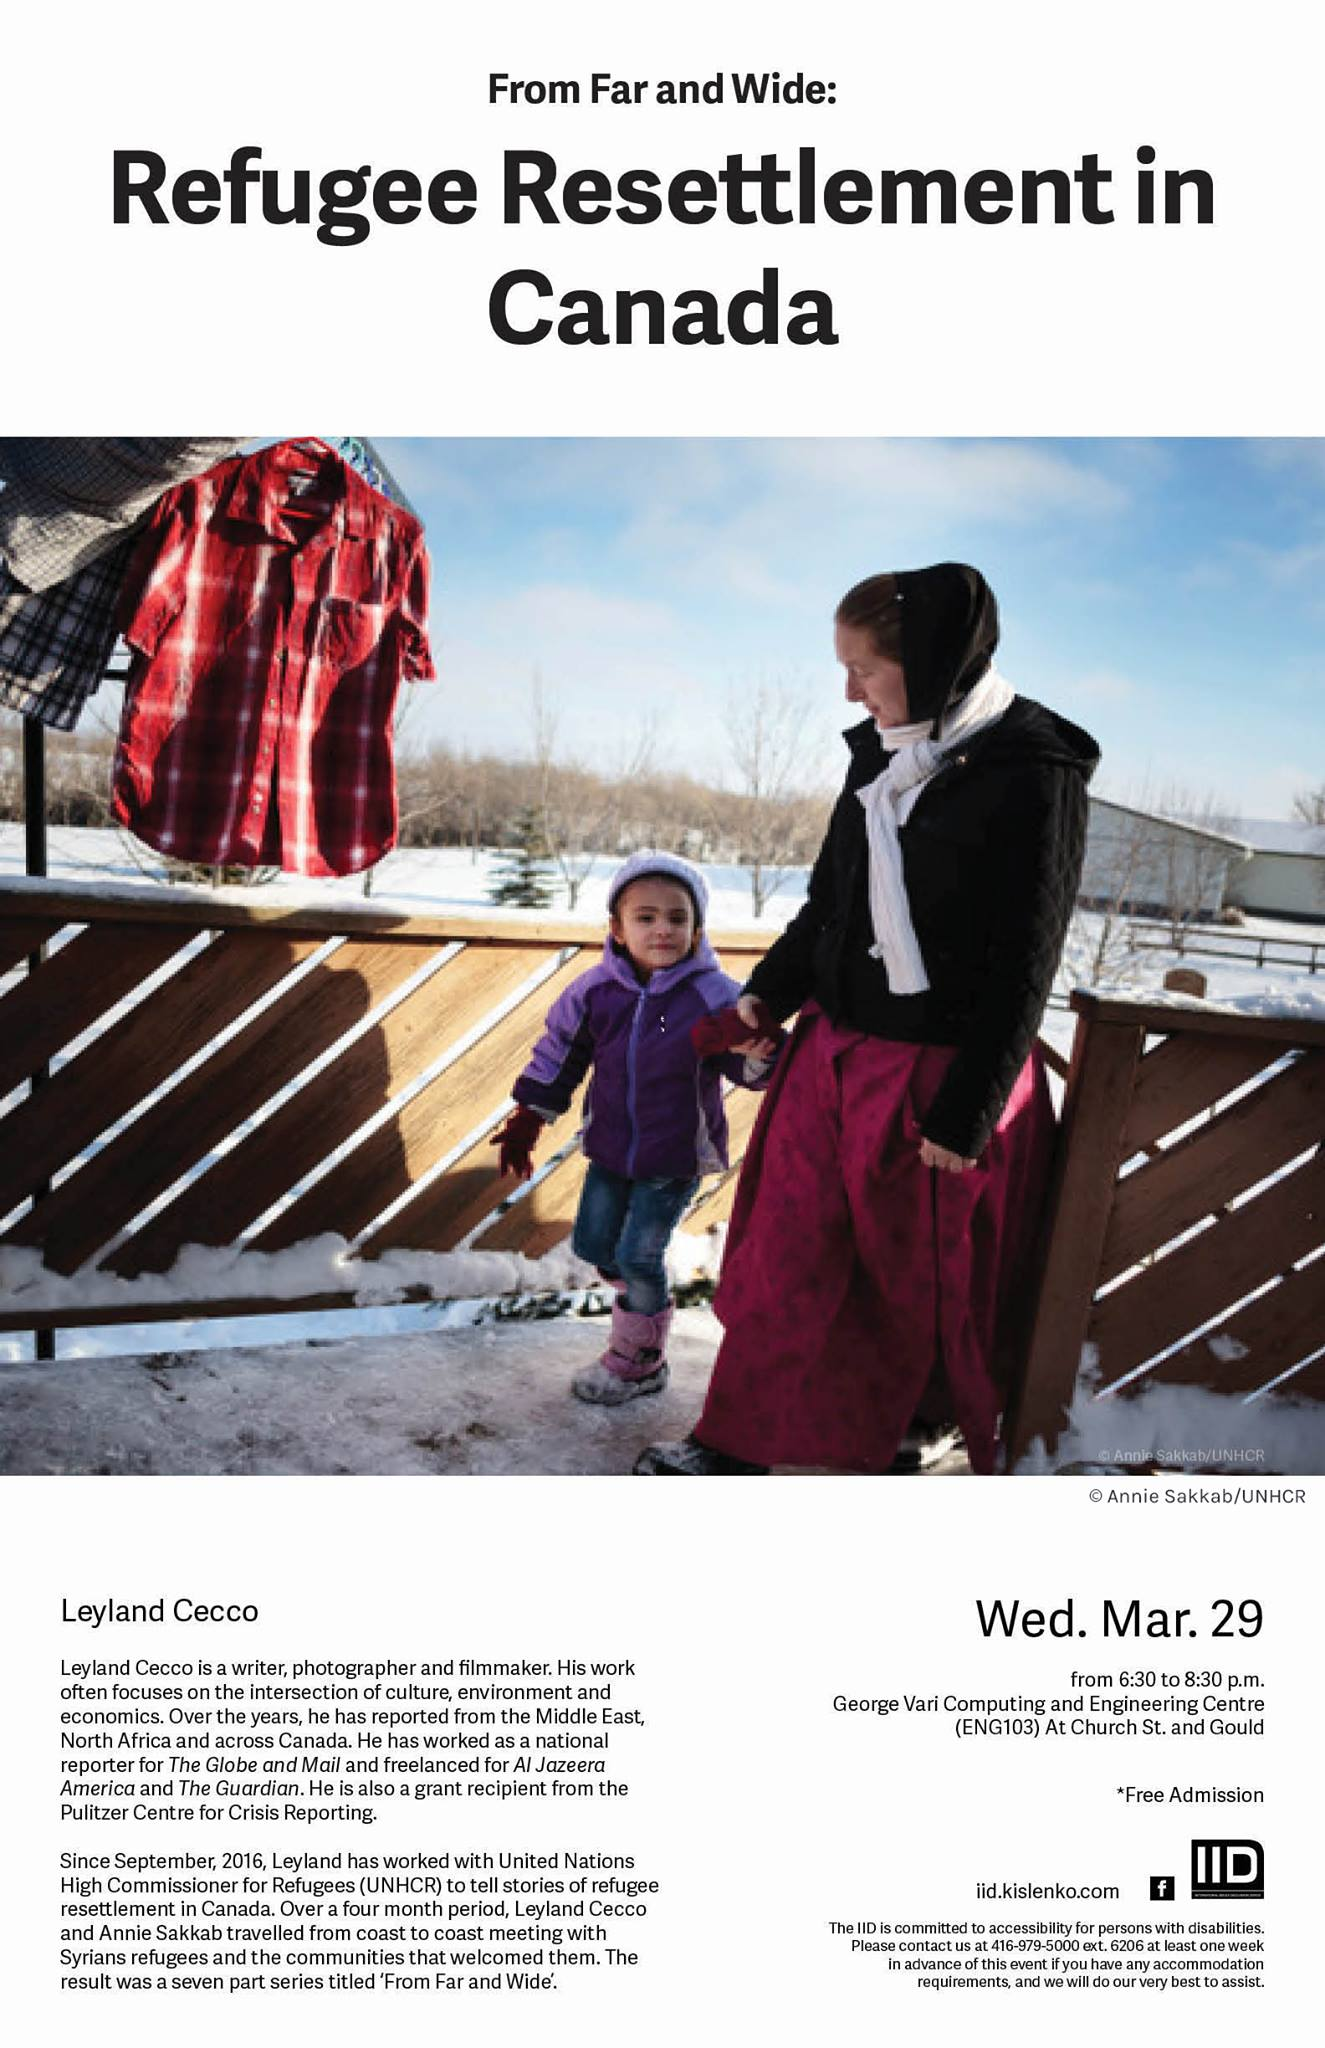 From Far and Wide: Refugee Resettlement in Canada—Wednesday, March 29th, 2017